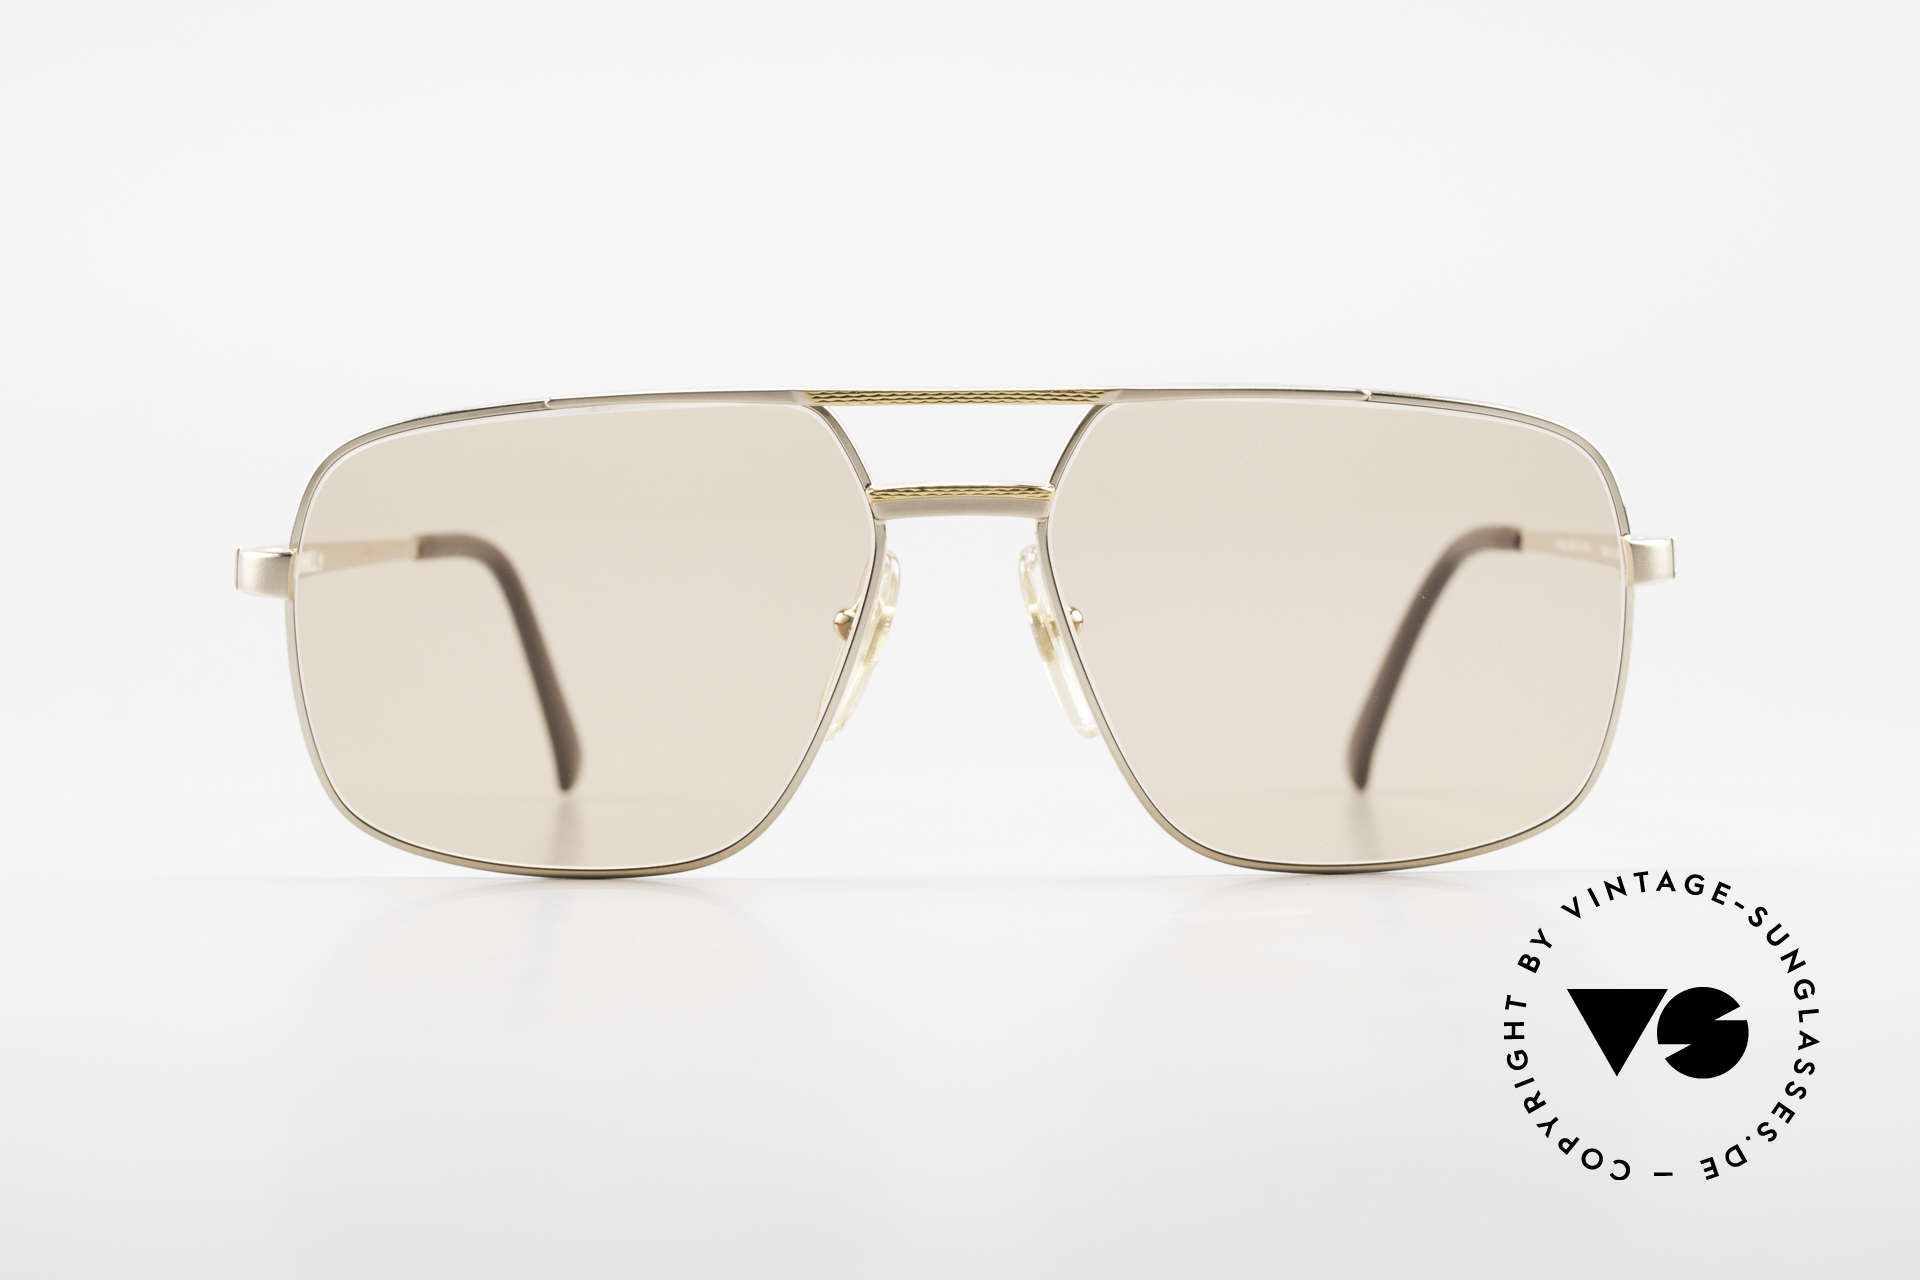 Dunhill 6068 Gold Plated Frame Changeable, this is the indisputable spearhead of sunglasses' quality, Made for Men